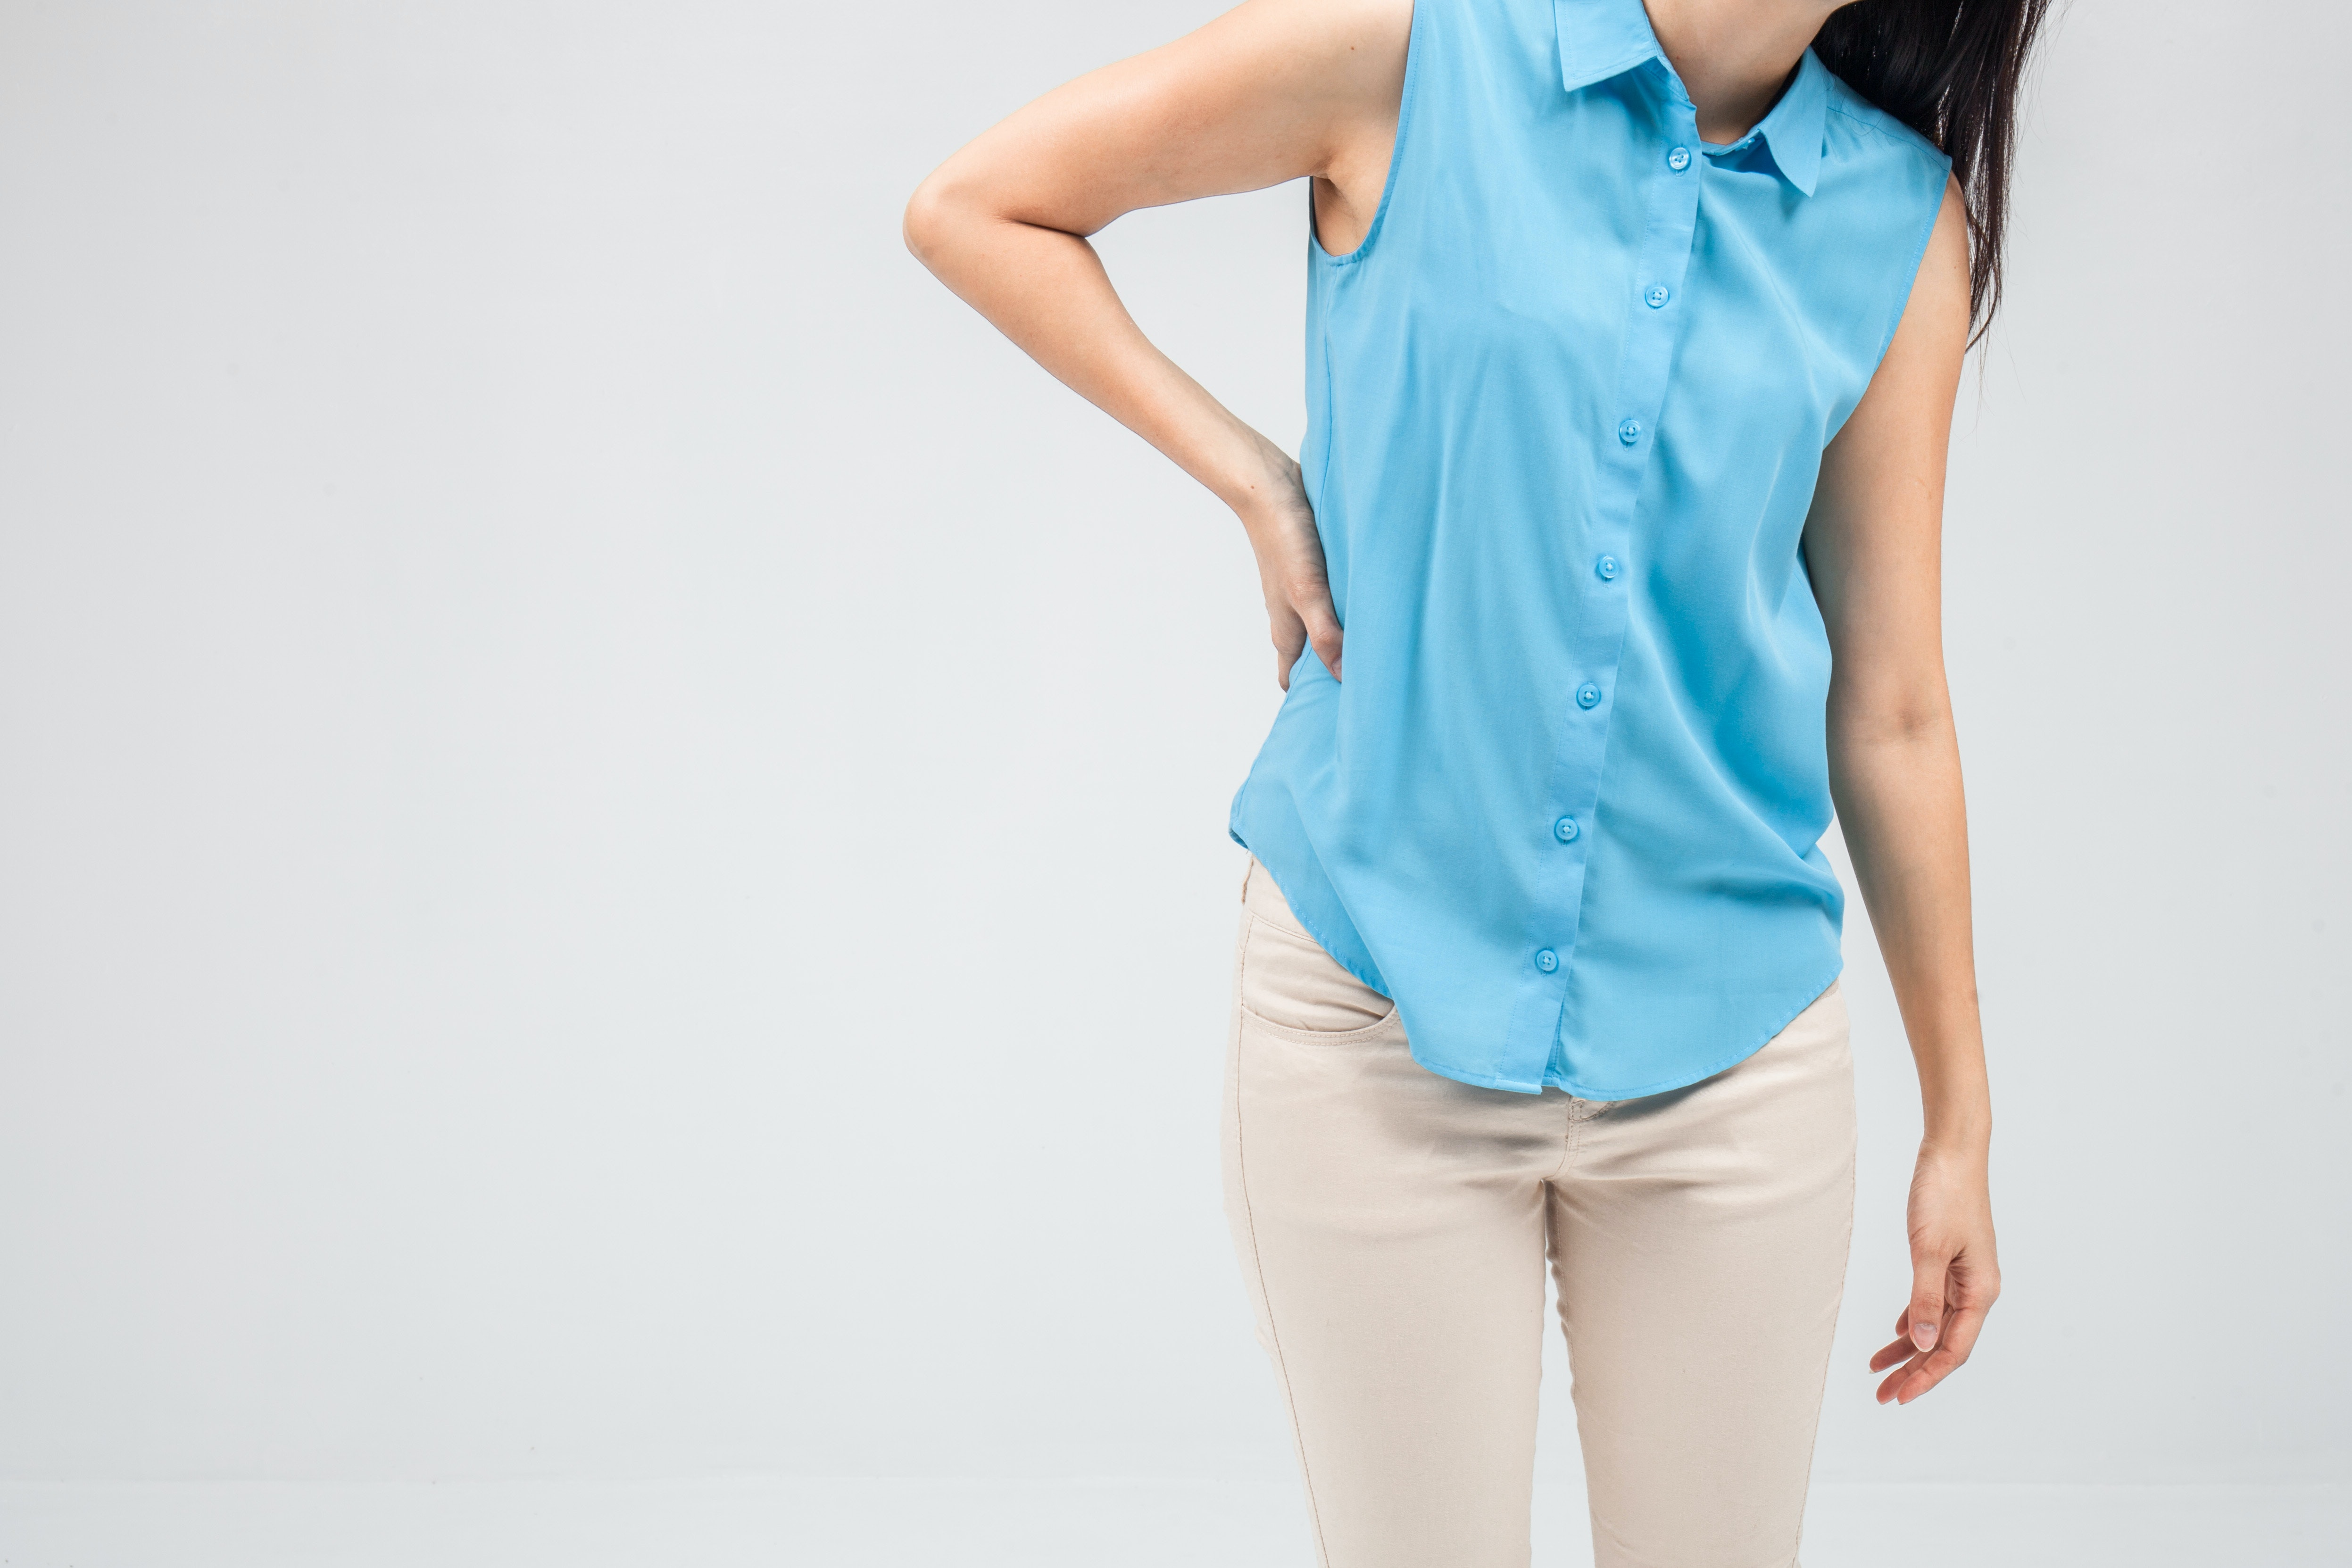 An image depicting a person suffering from tingling hip symptoms